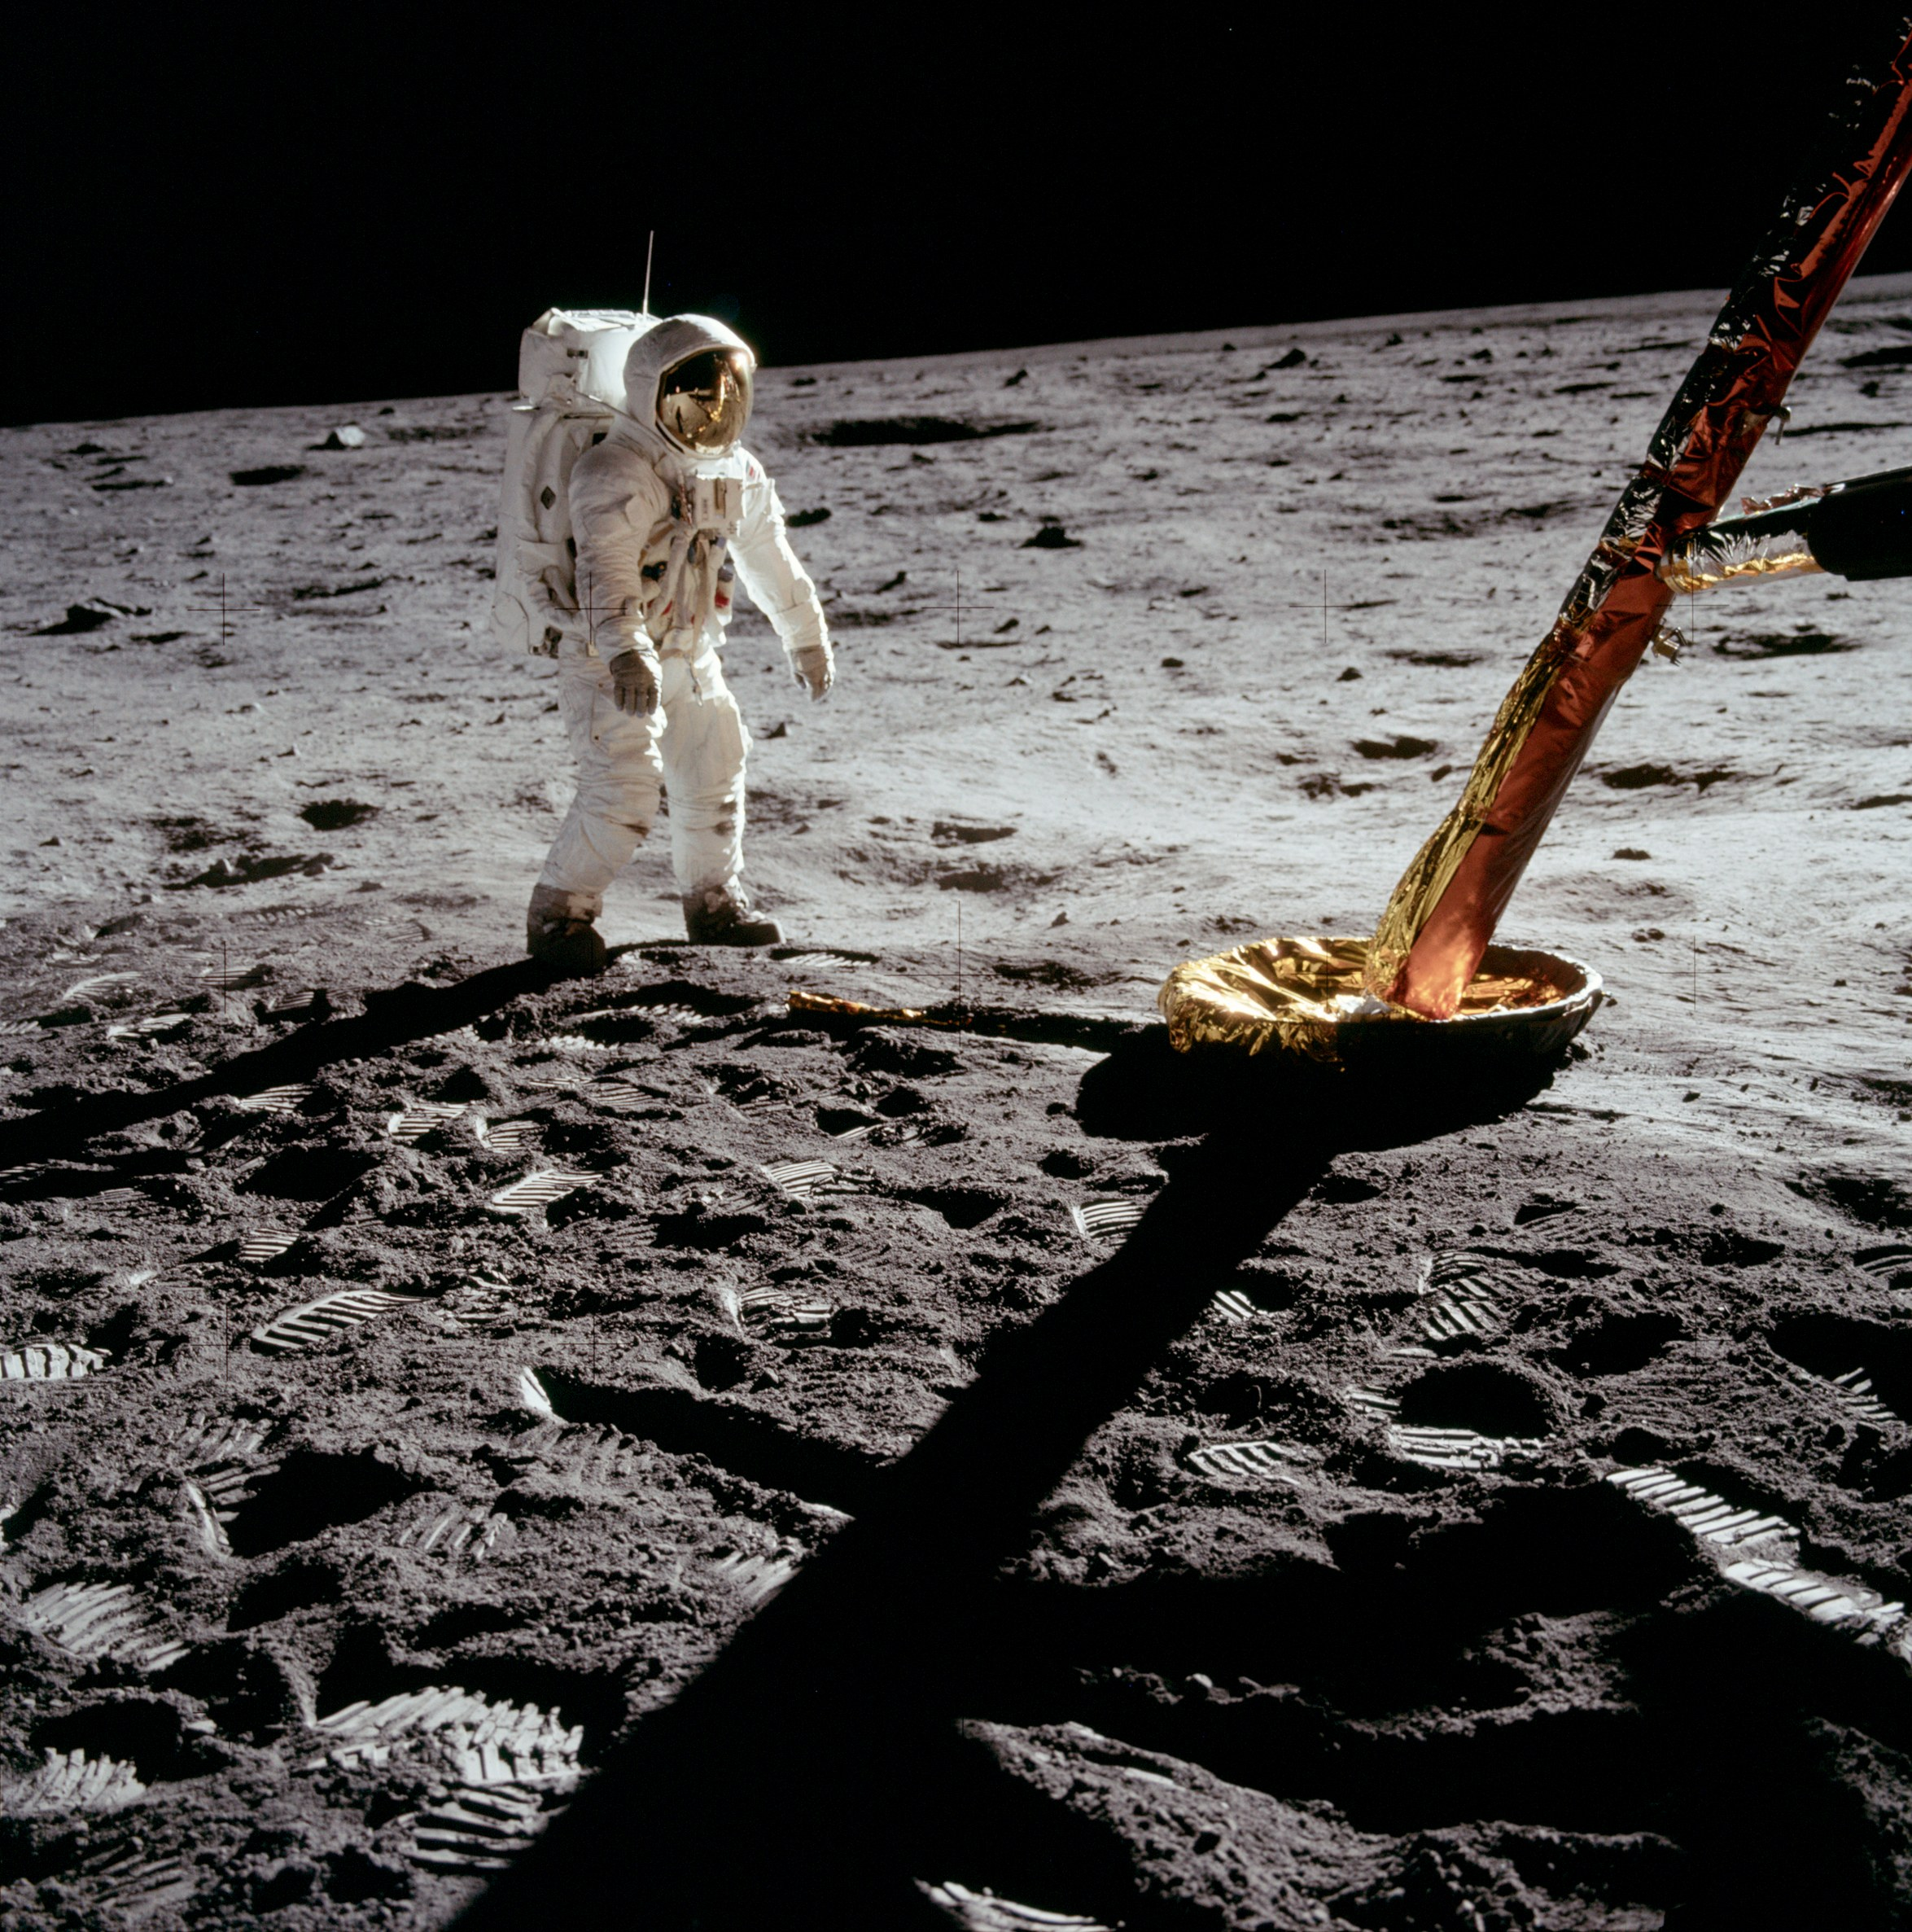 the moon - Why didn't the Apollo 11 lander blow the dust away? (or